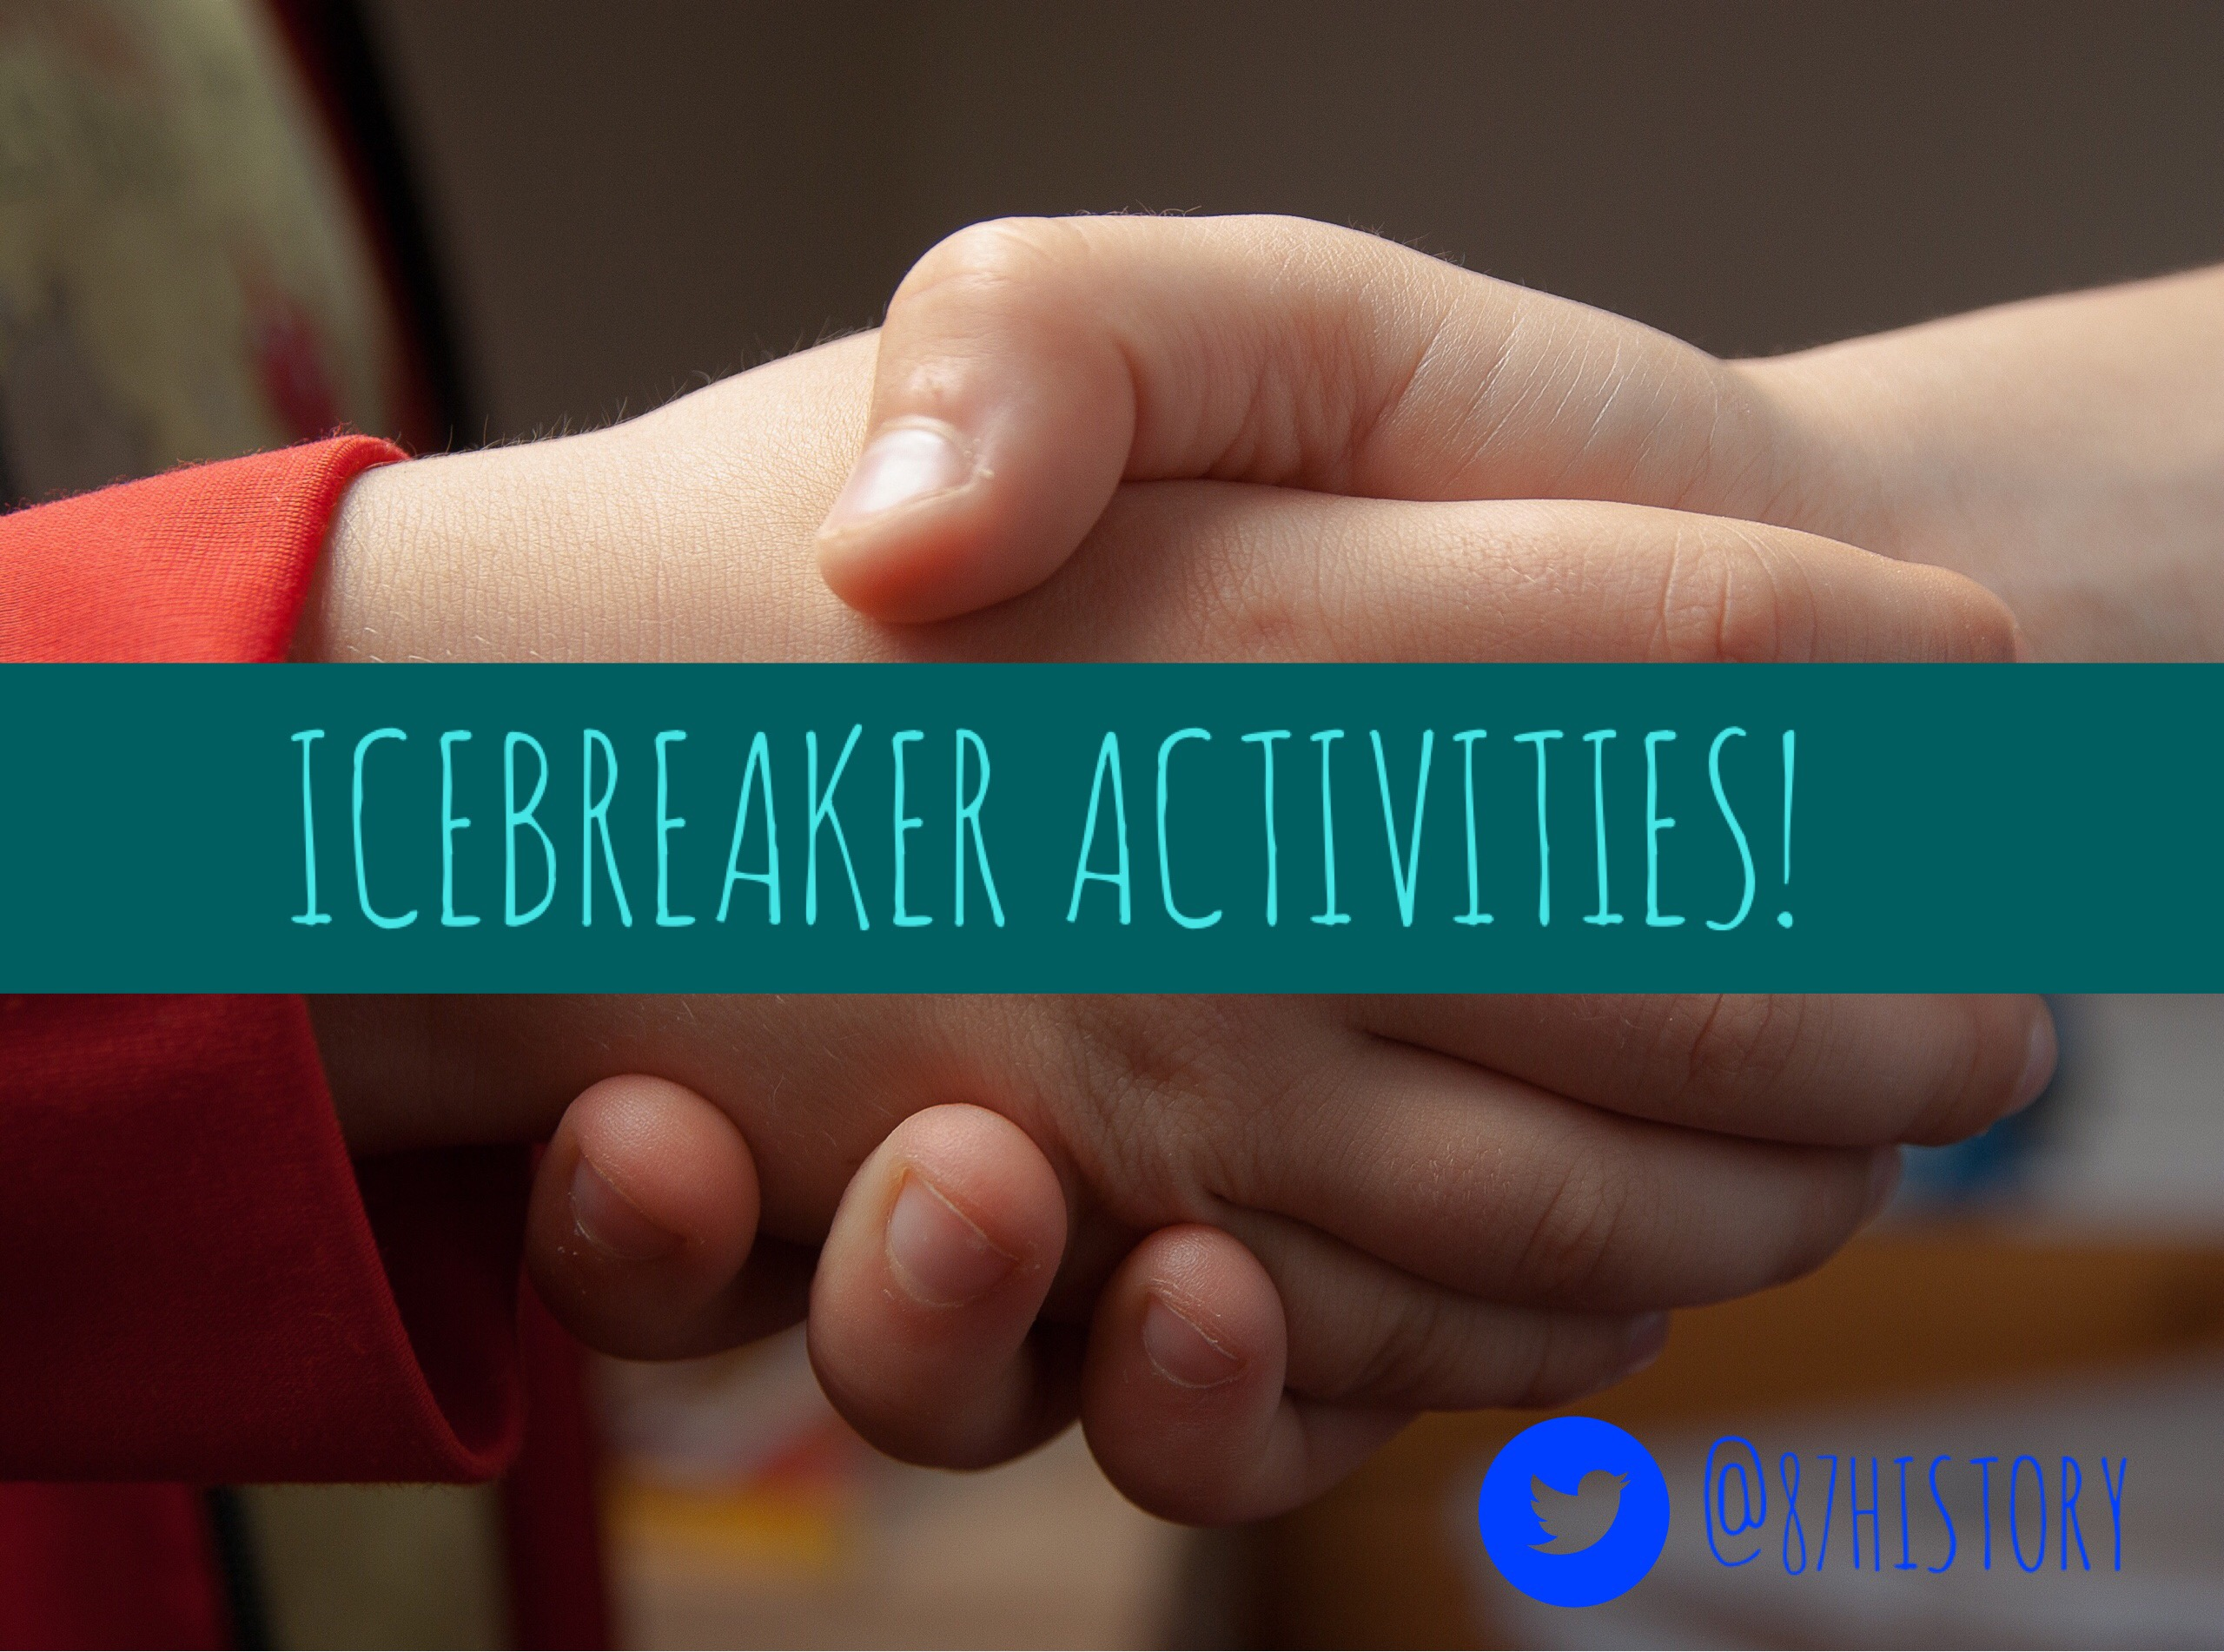 Back to school – Ice breaker activities!